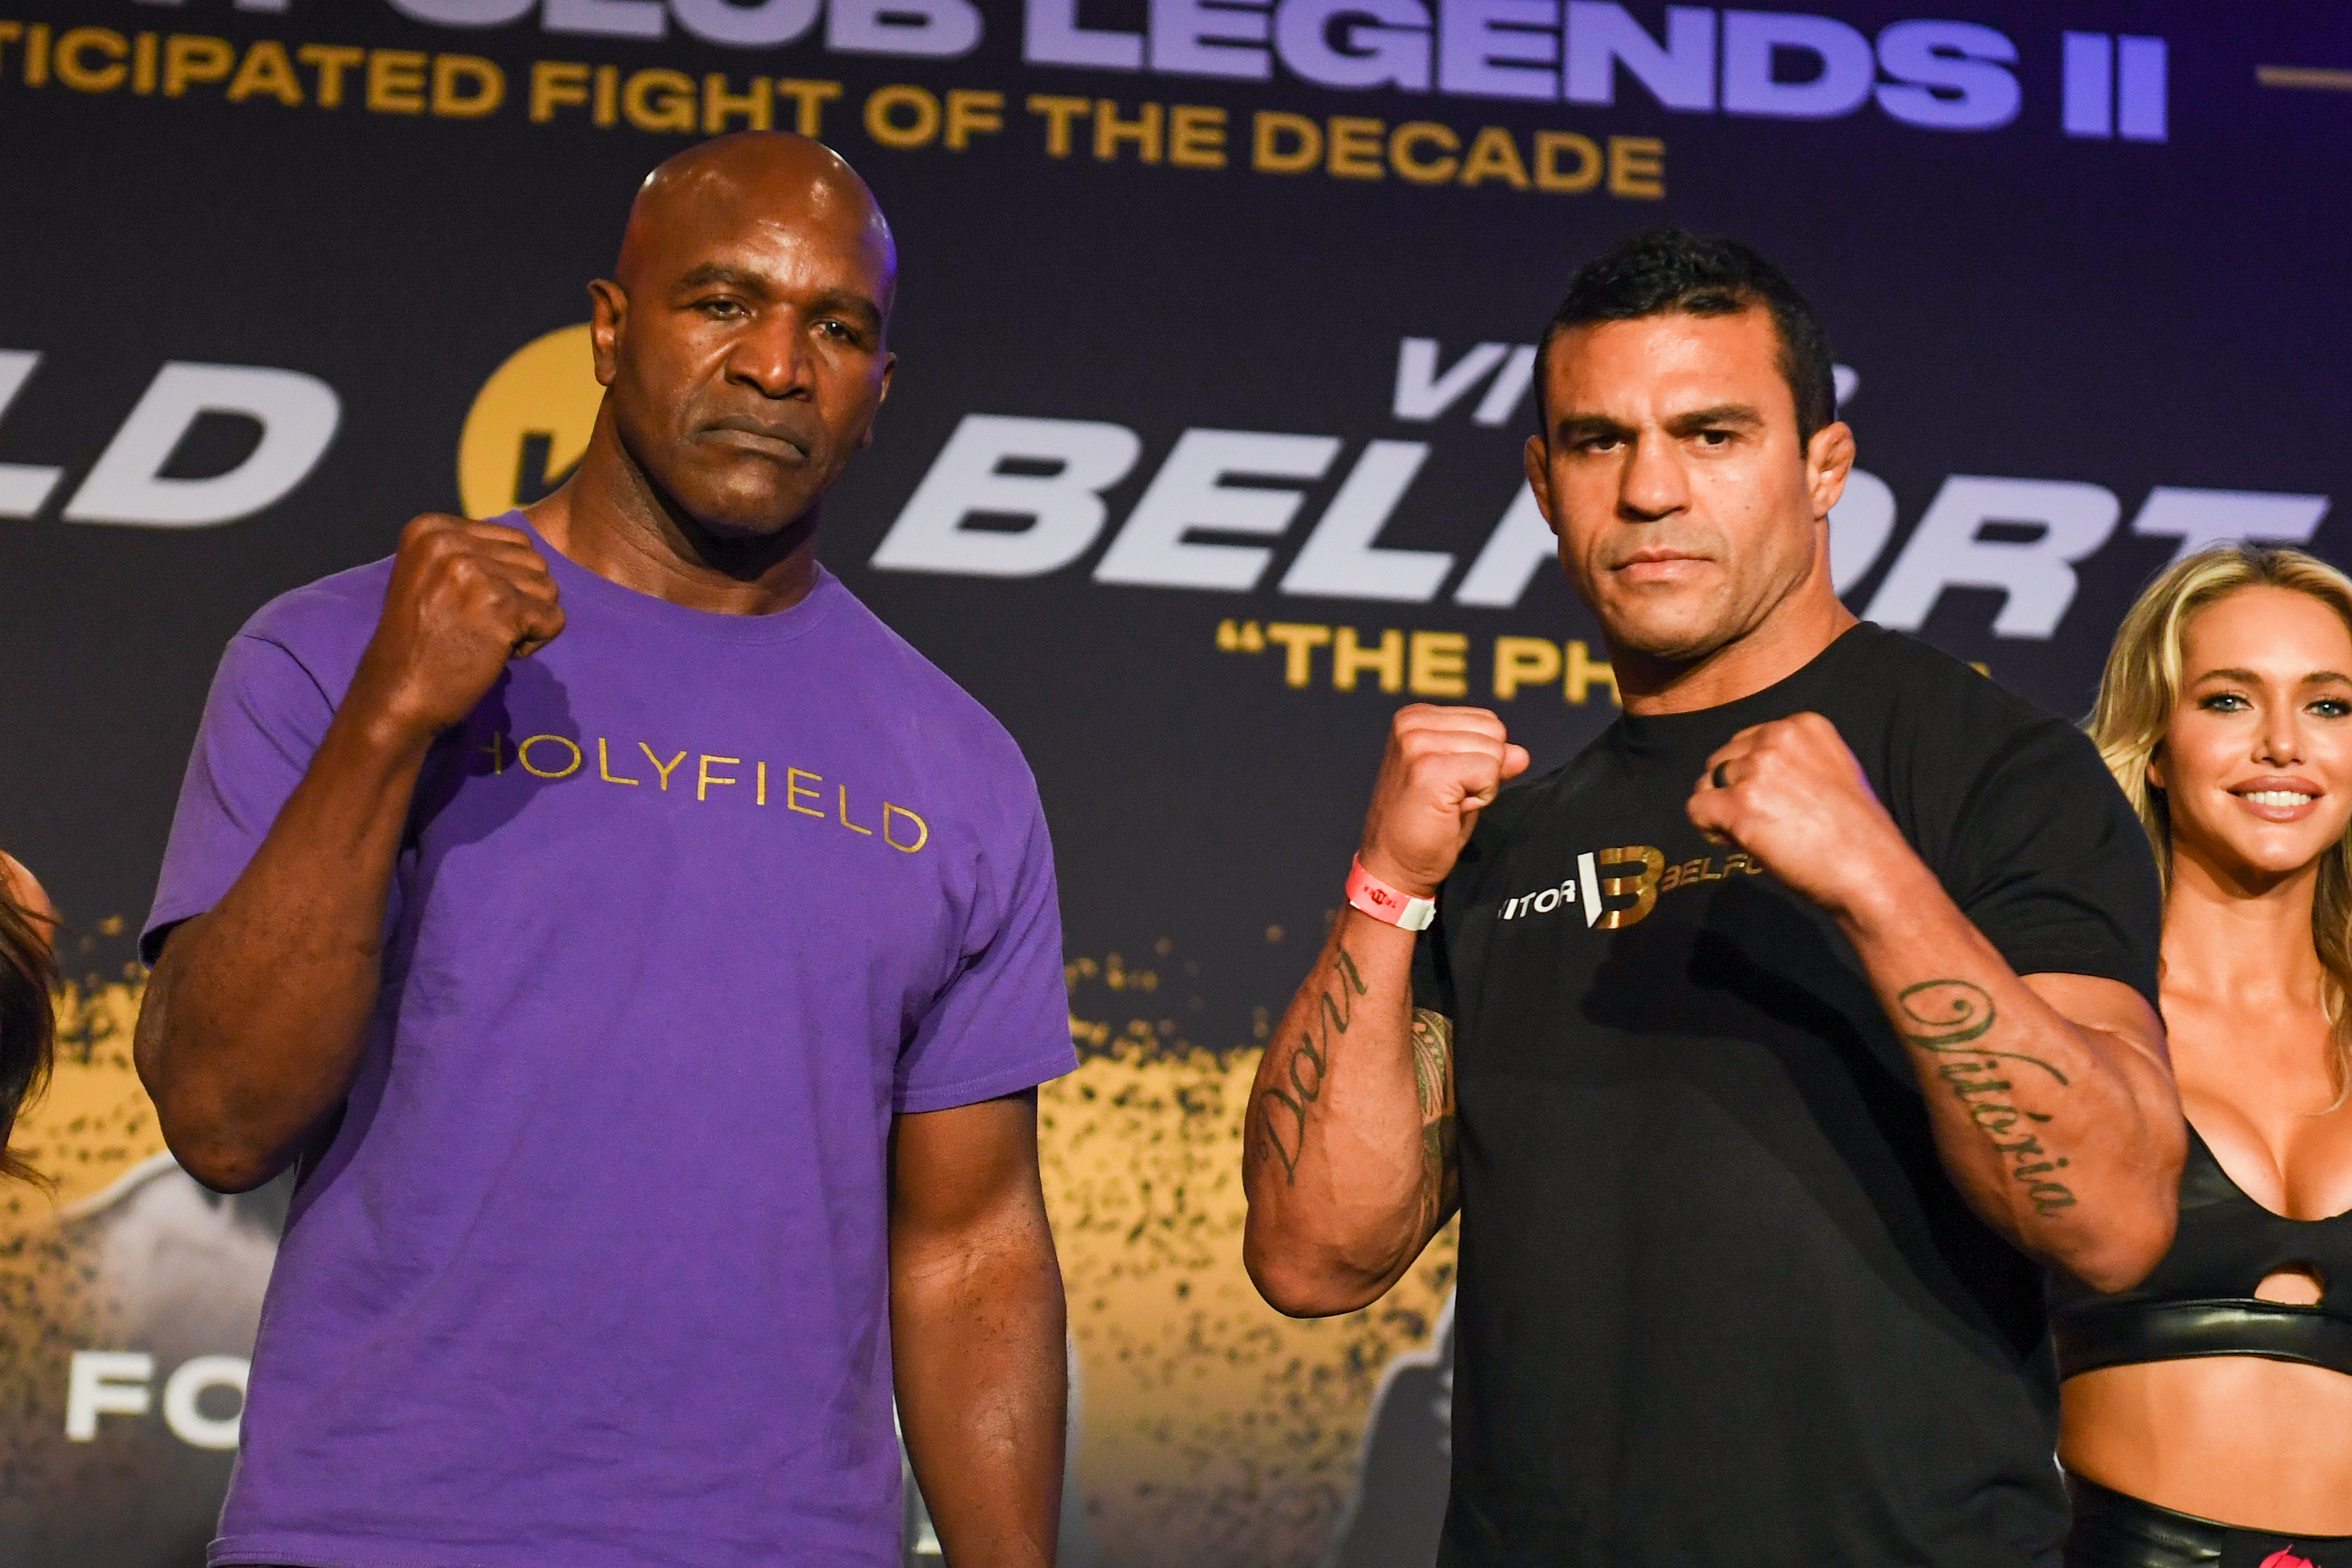 Evander Holyfield and Vitor Belfort pose for the press at a media event for their PPV boxing match.